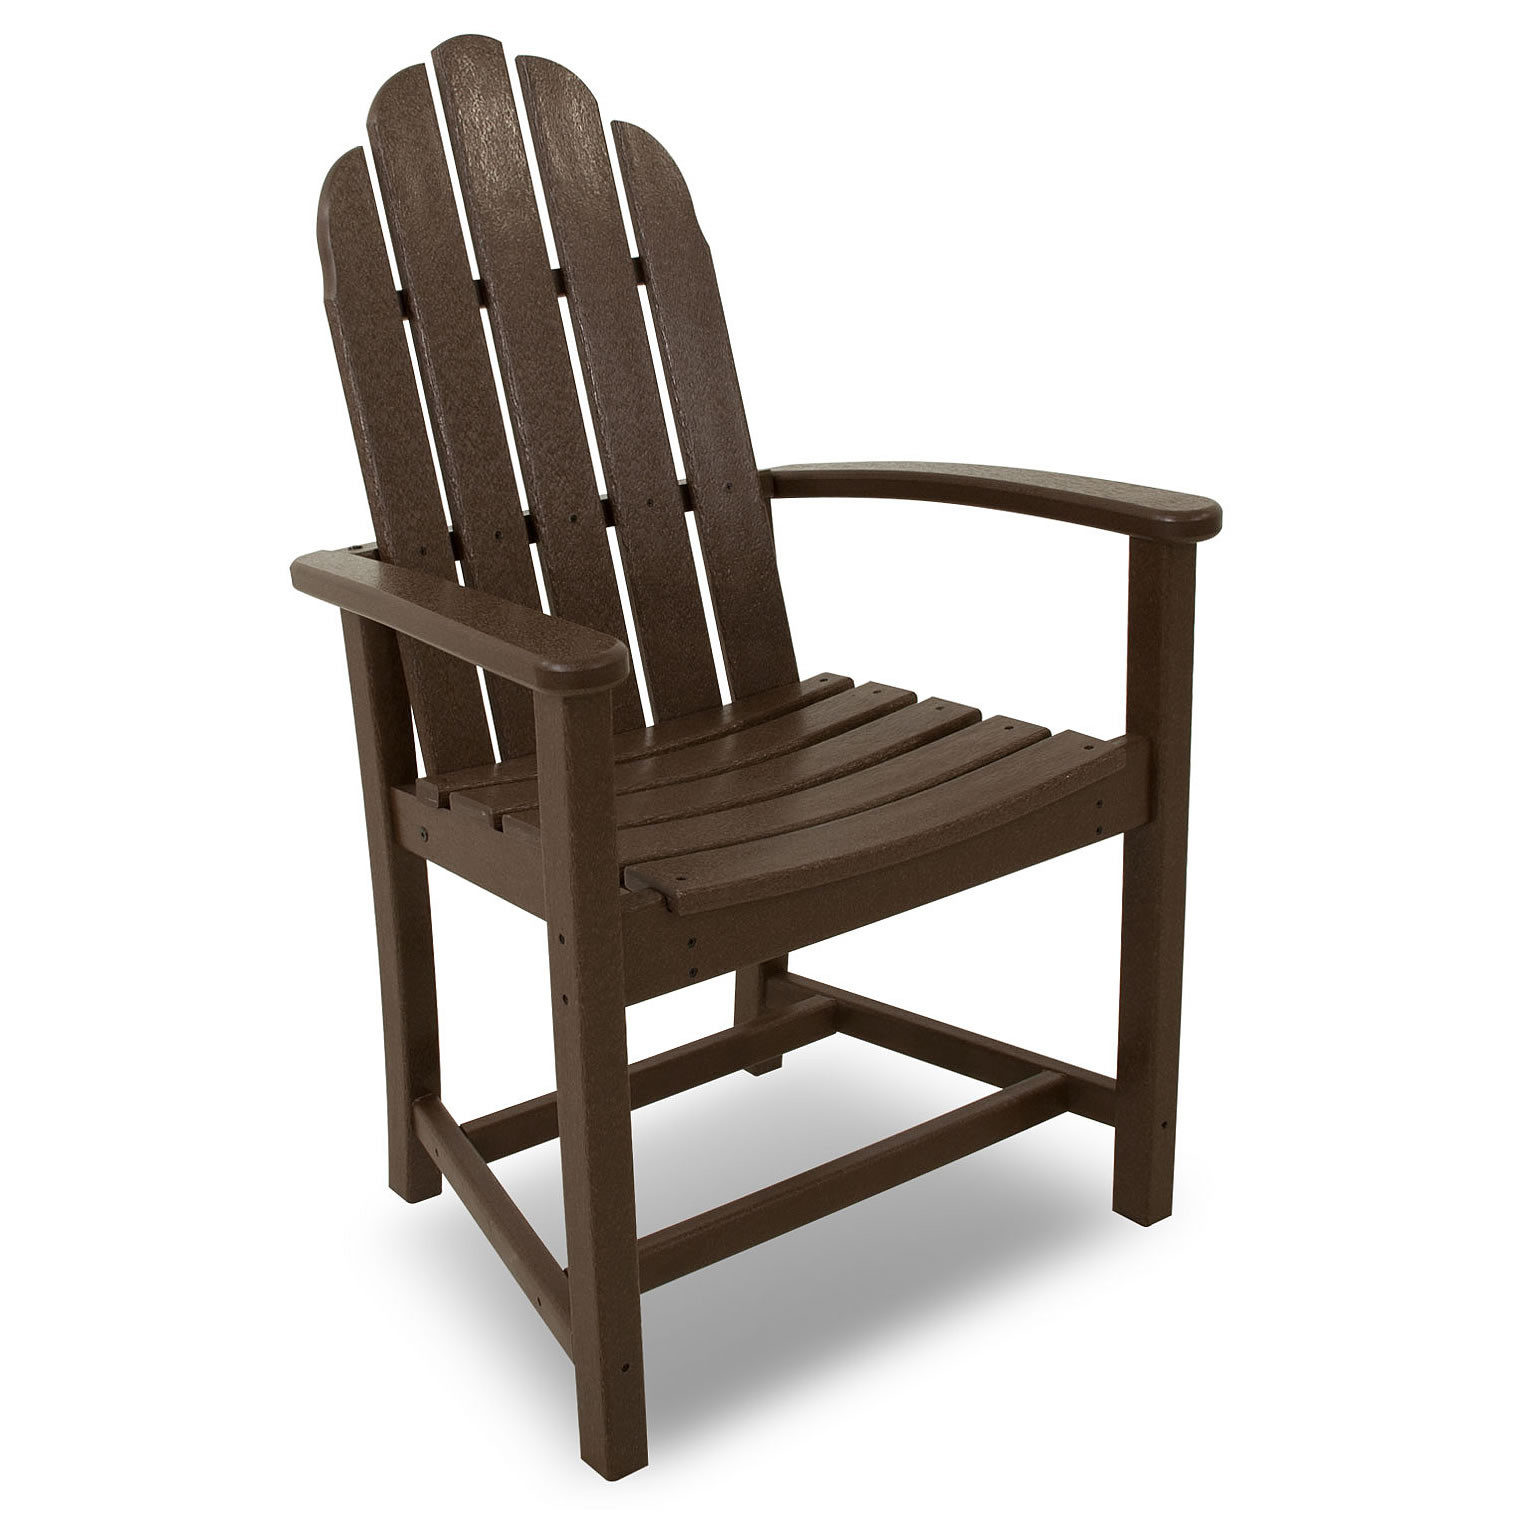 polywood adirondack chairs stationery office chair classic dining